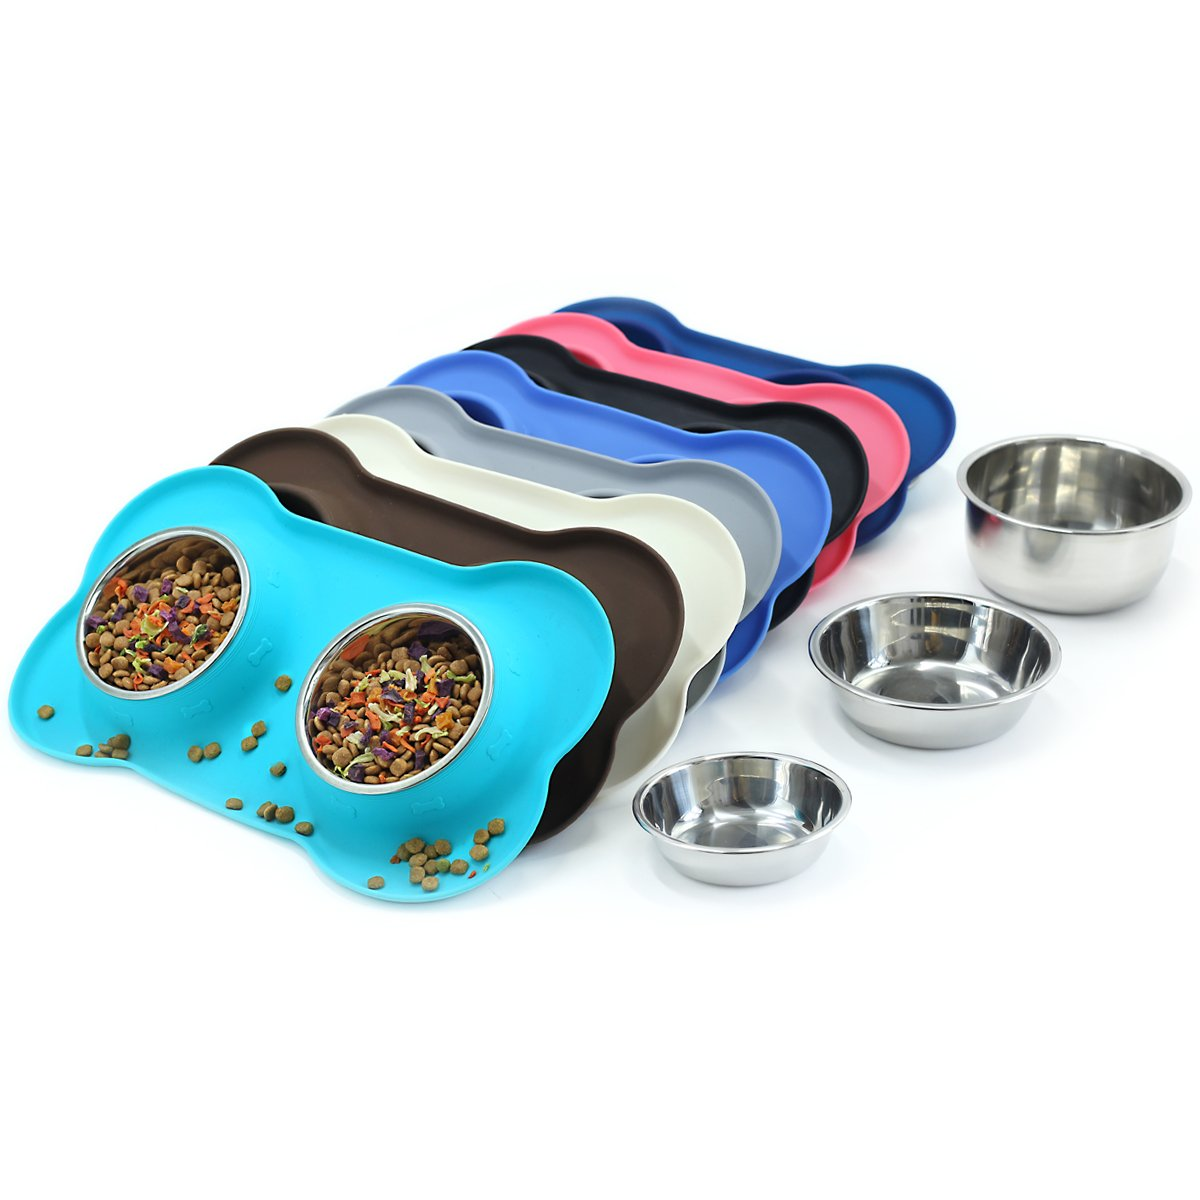 Vivaglory Dog Bowls Stainless Steel Water and Food Bowl Pet Puppy Cat Feeder with Non Spill Skid Resistant Silicone Mat, Medium, Turquoise